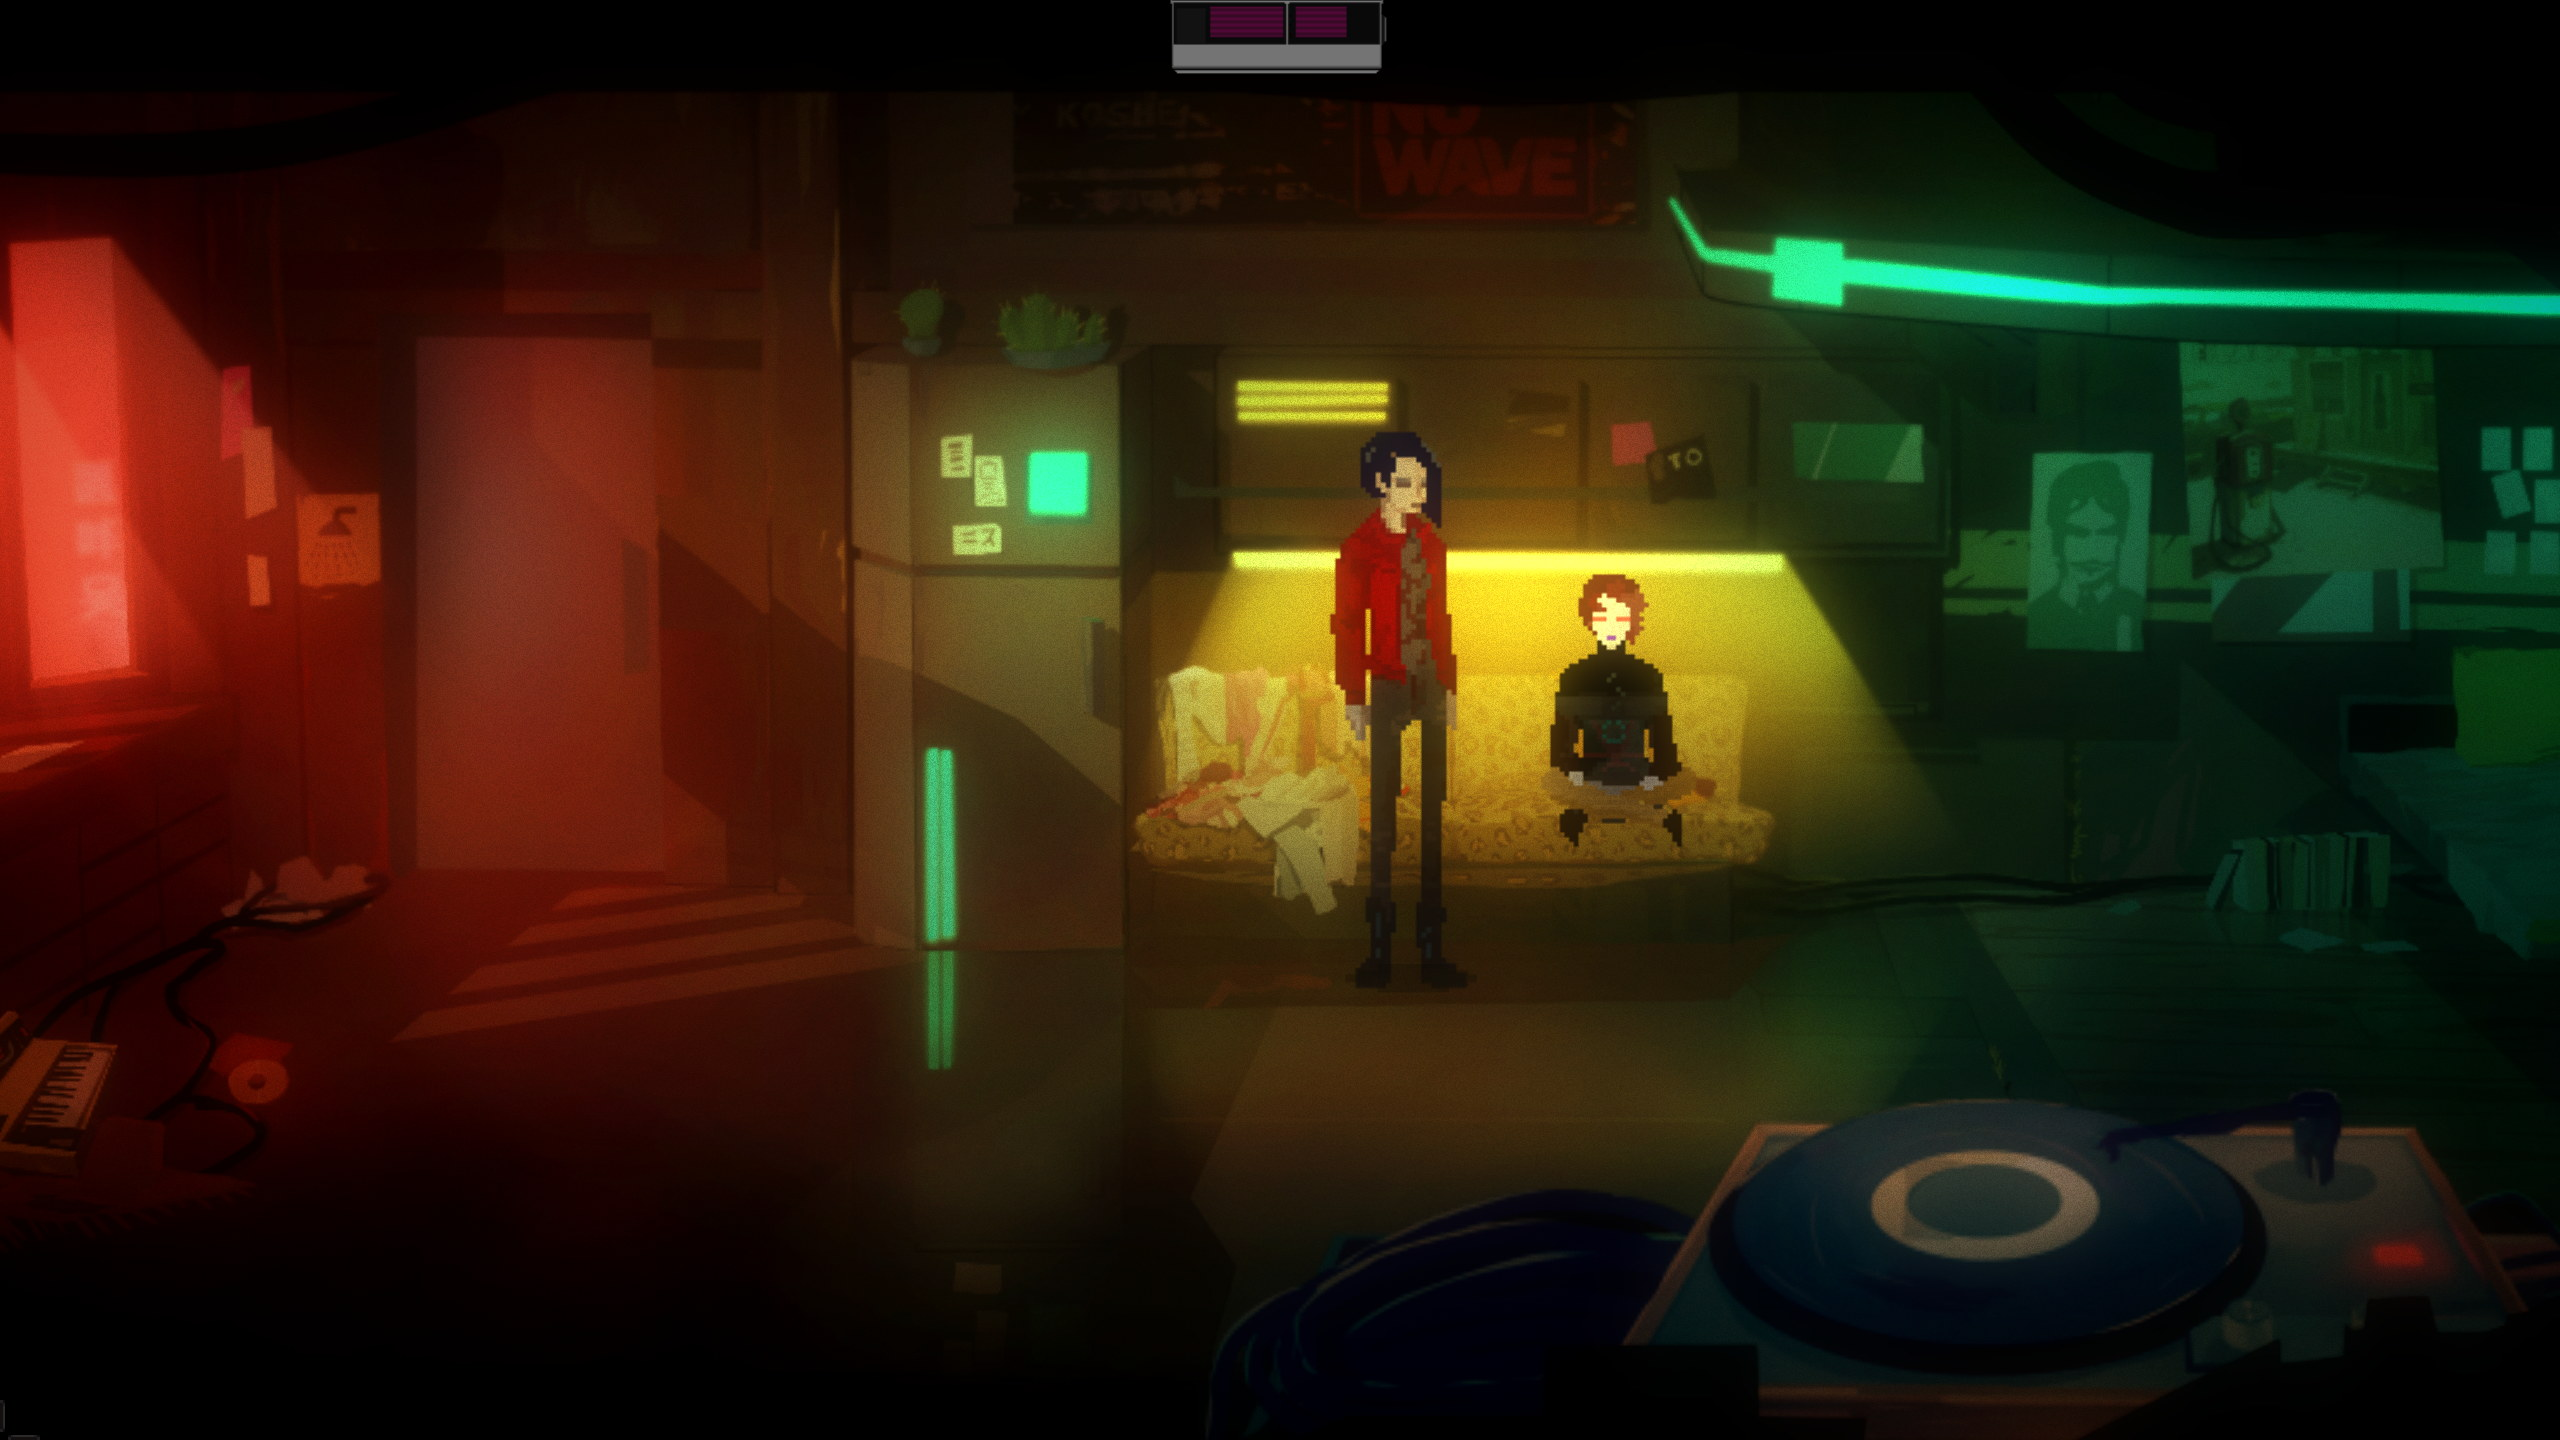 A screenshot from Void And Meddler. Two people are in a grungy, dimly lit apartment. There is a record player in the foreground.